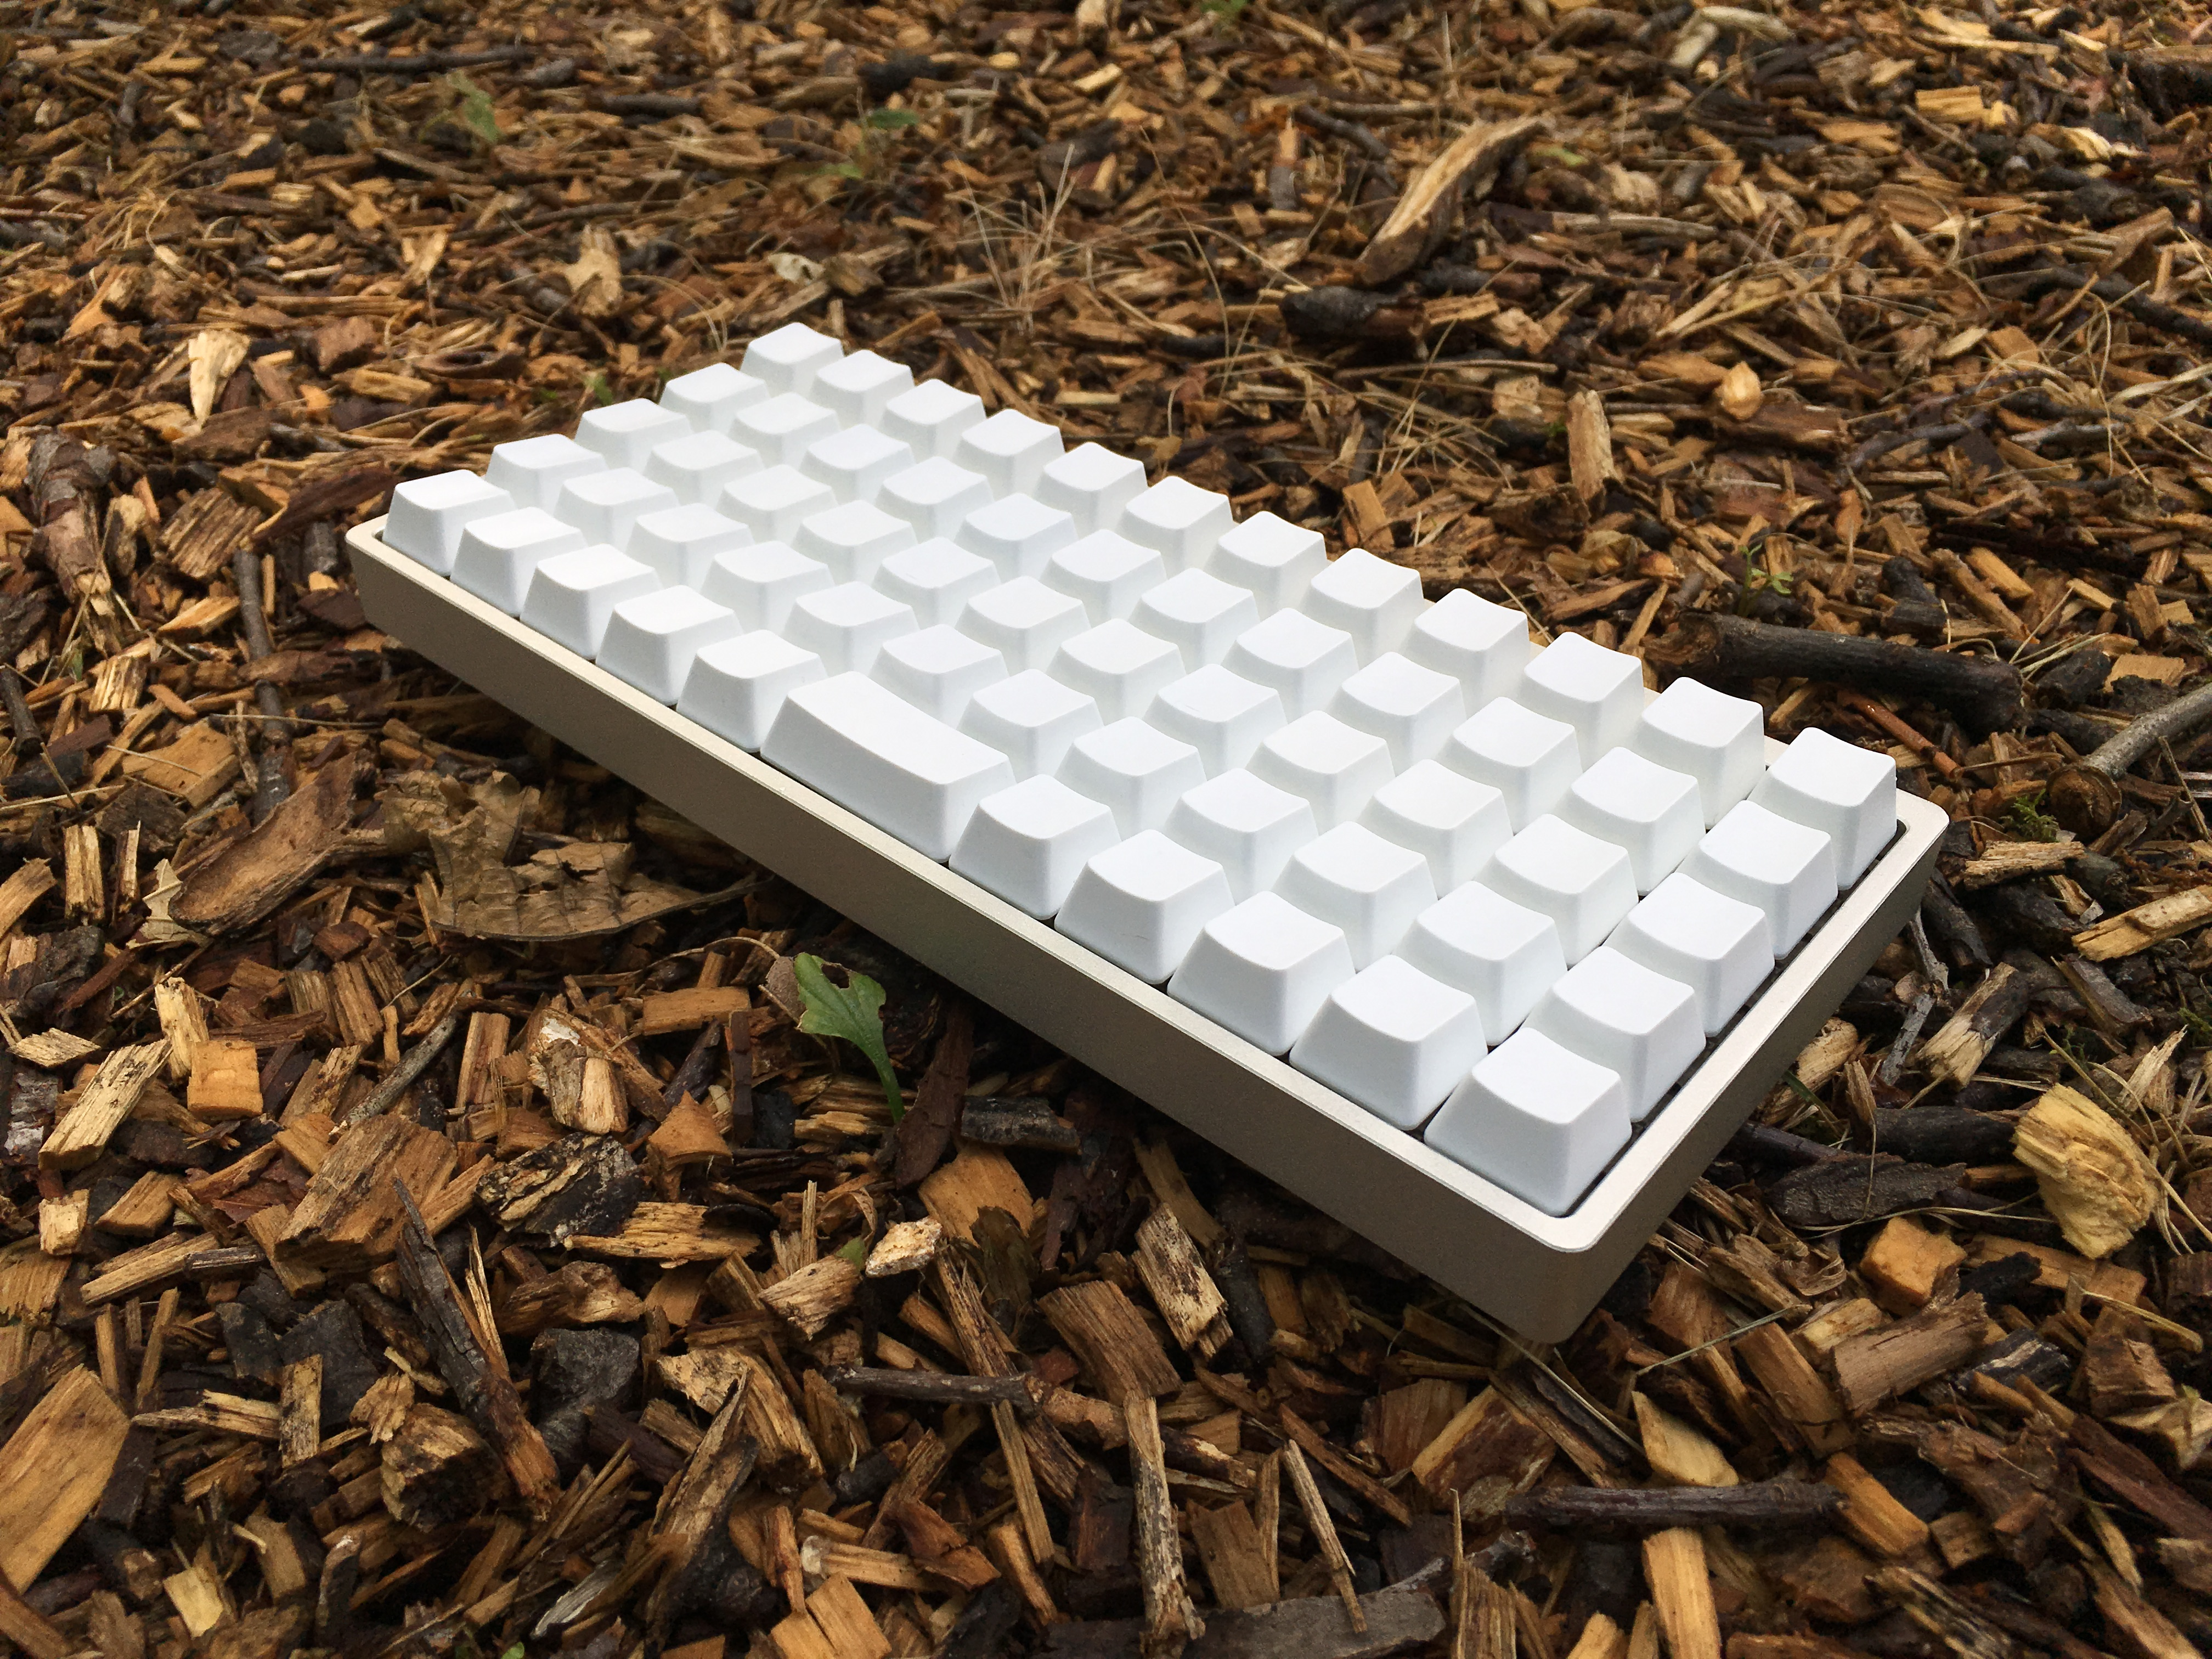 qmk_firmware/keyboards/preonic at master · qmk/qmk_firmware